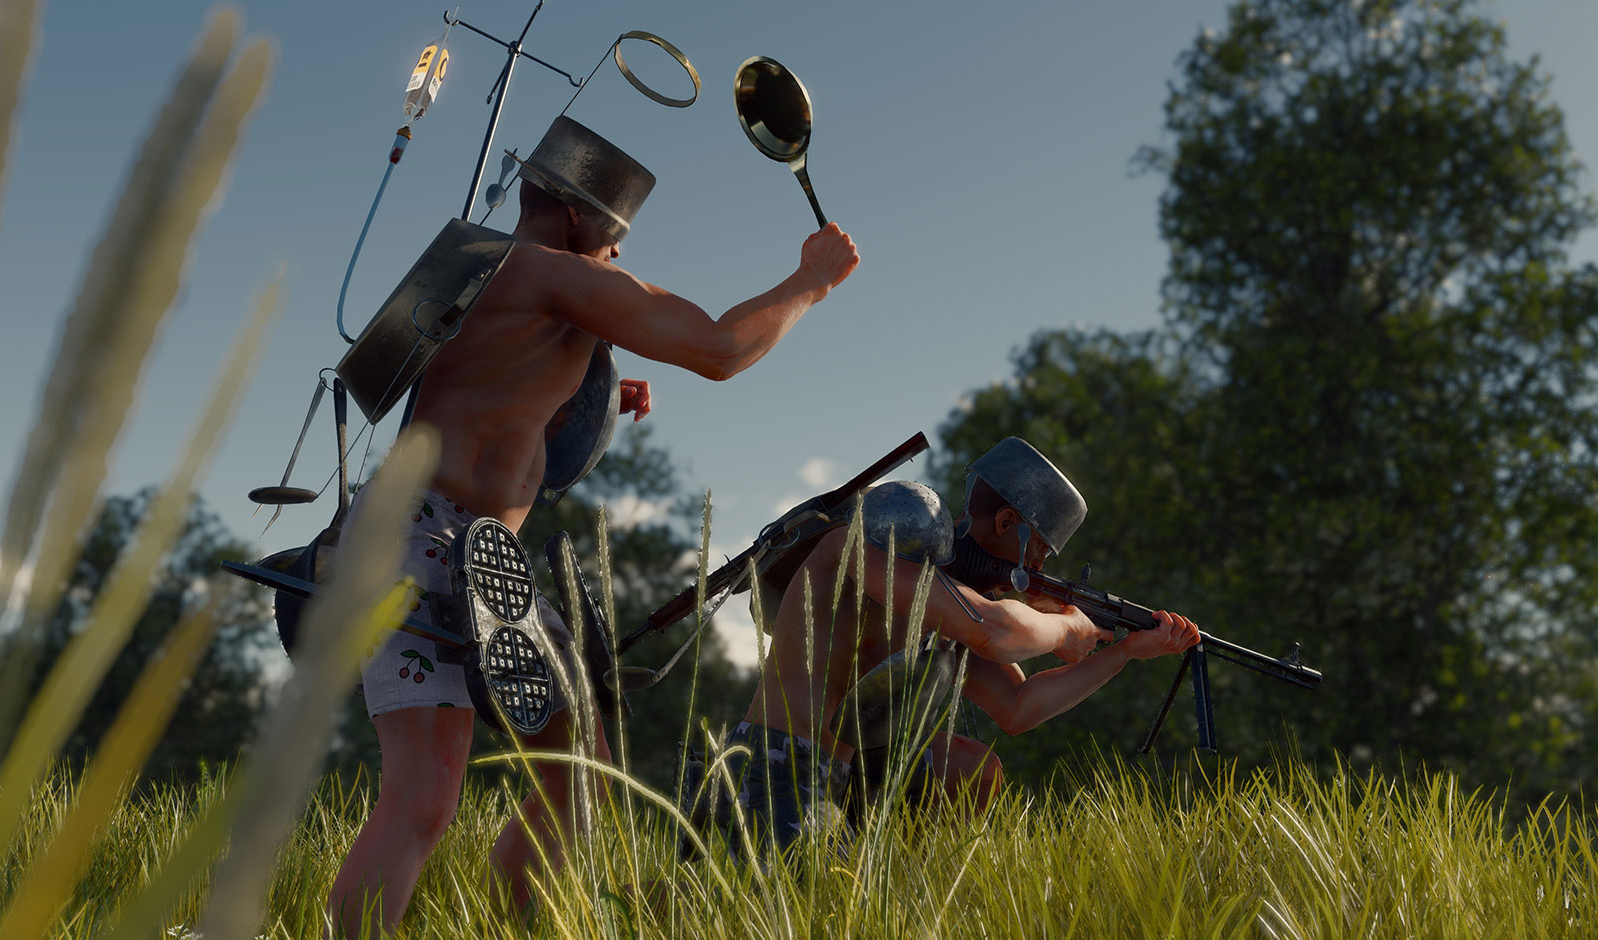 Cuisine Royale started as a joke, but it's now a fun and currently